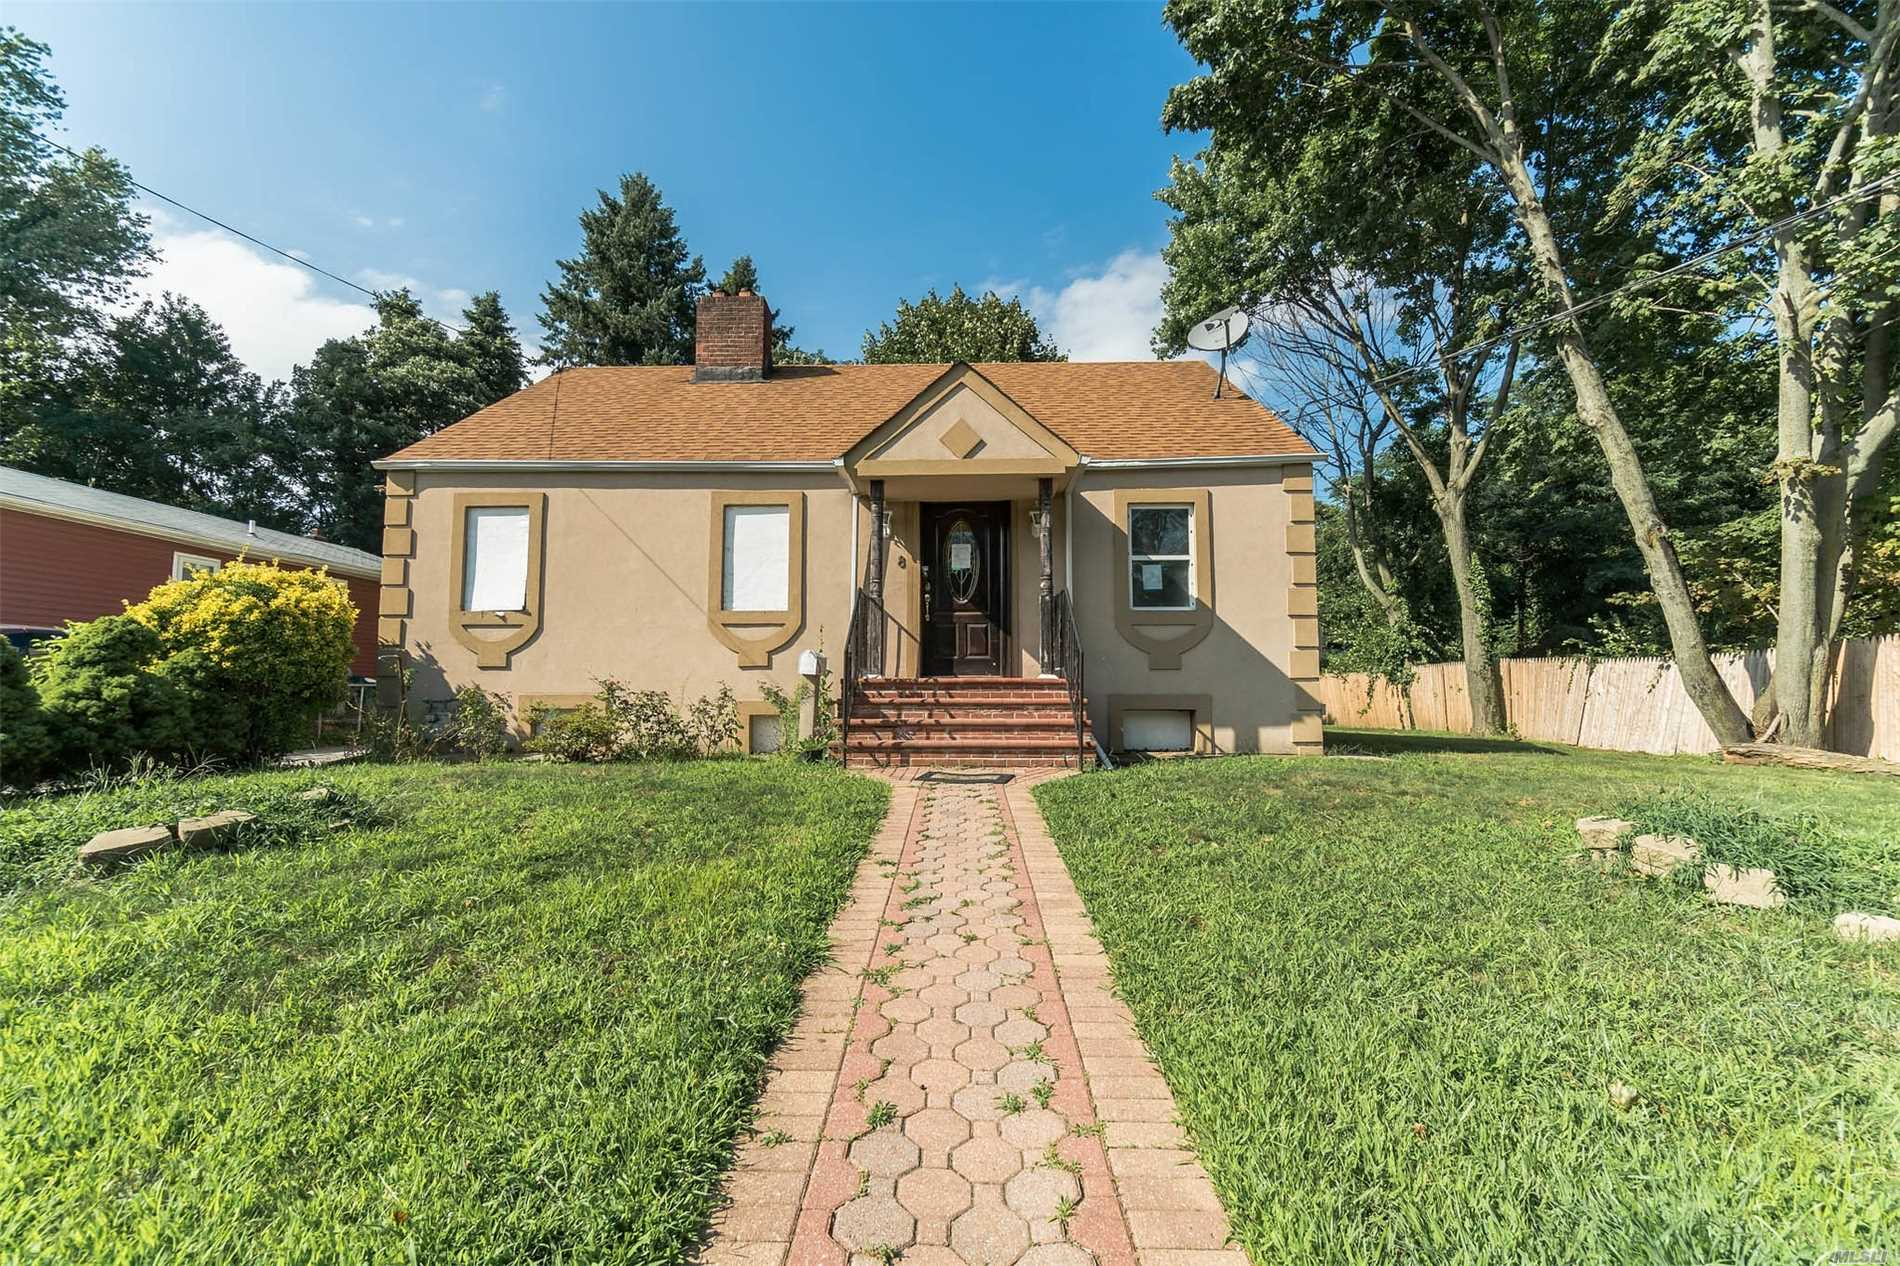 Photo of home for sale at 8 Coolidge Ave, Amityville NY